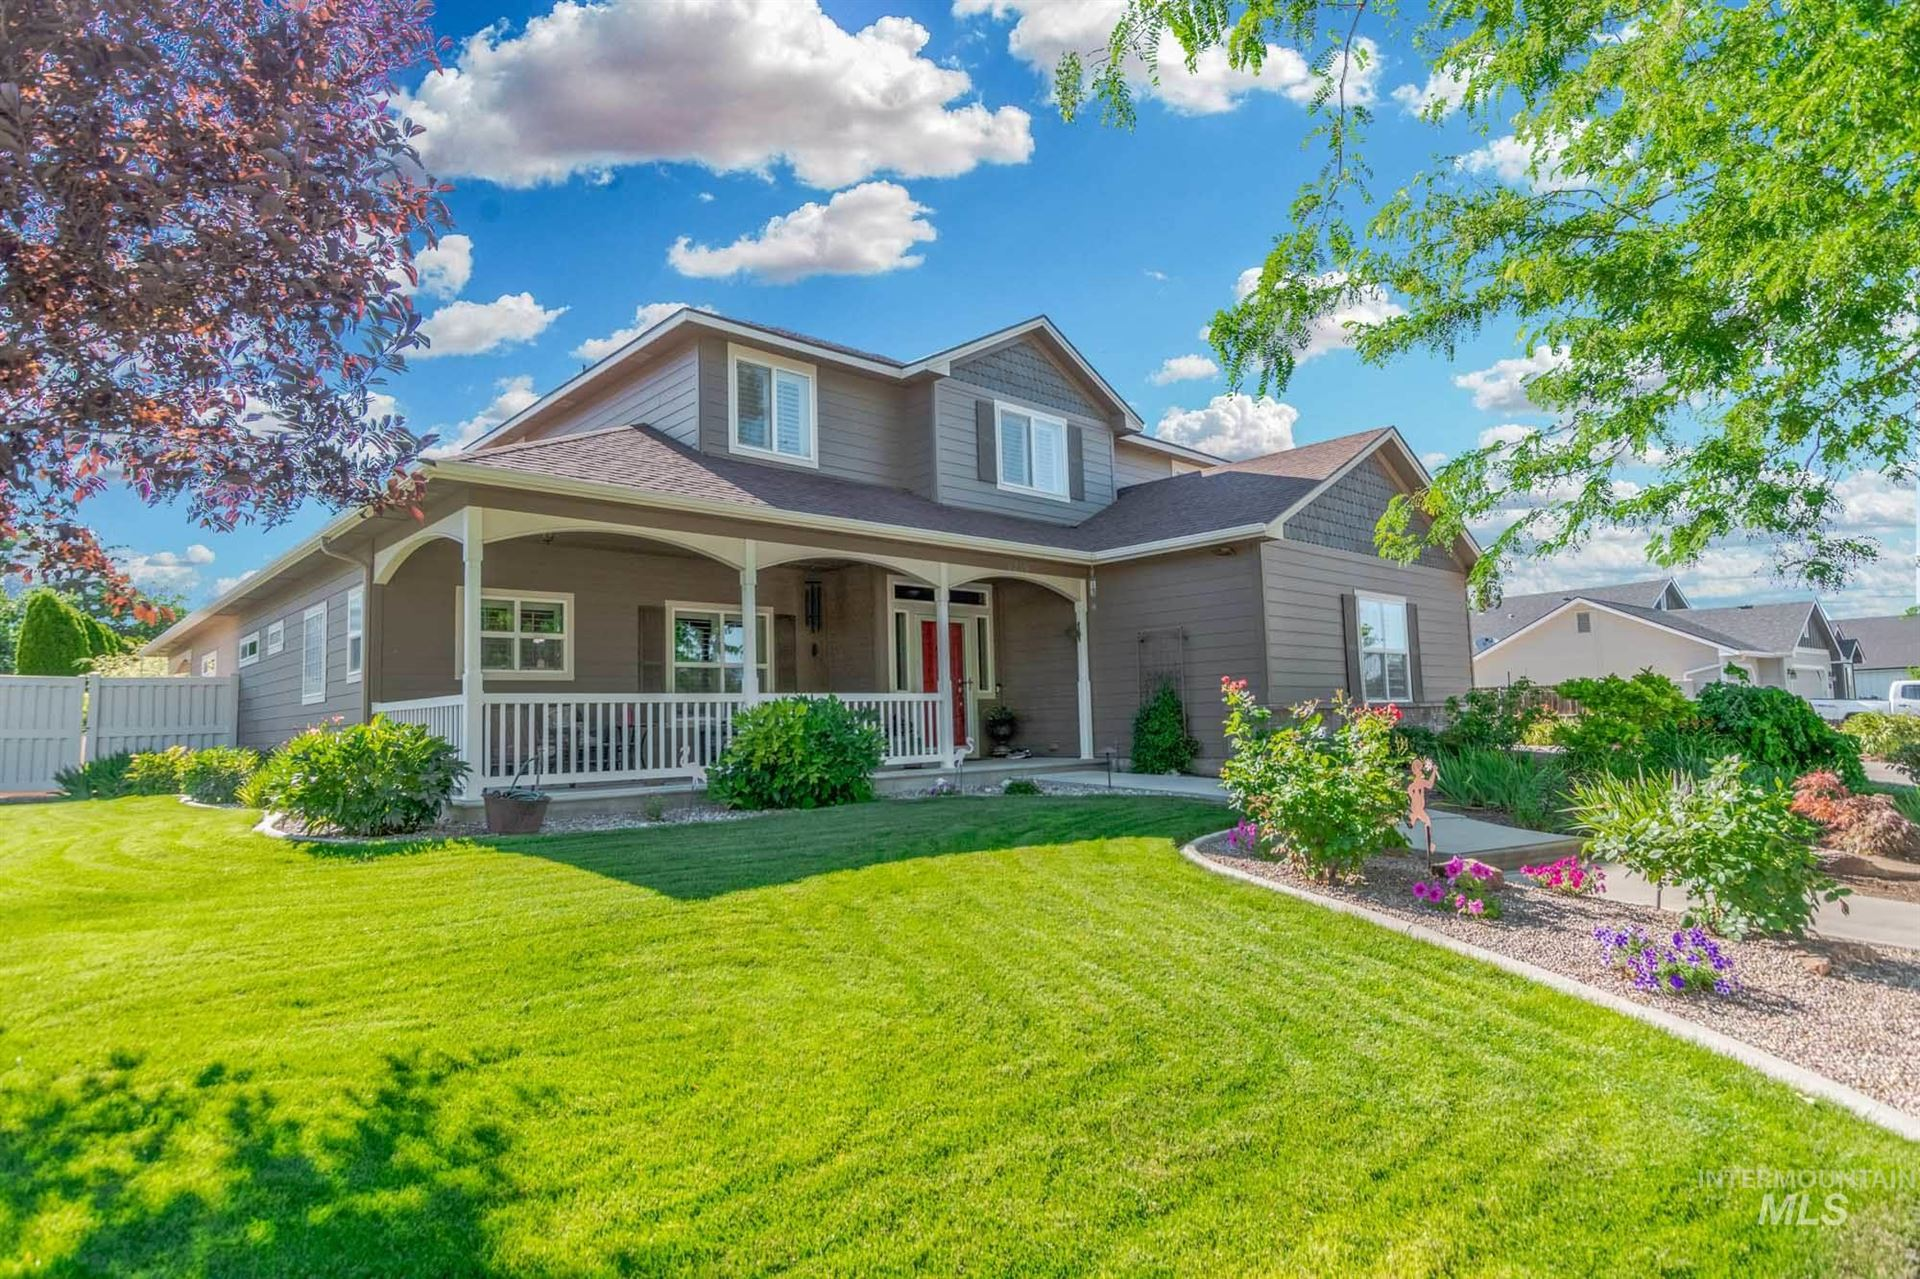 Photo of 1219 S Spring Valley Dr, Nampa, ID 83686 (MLS # 98776272)